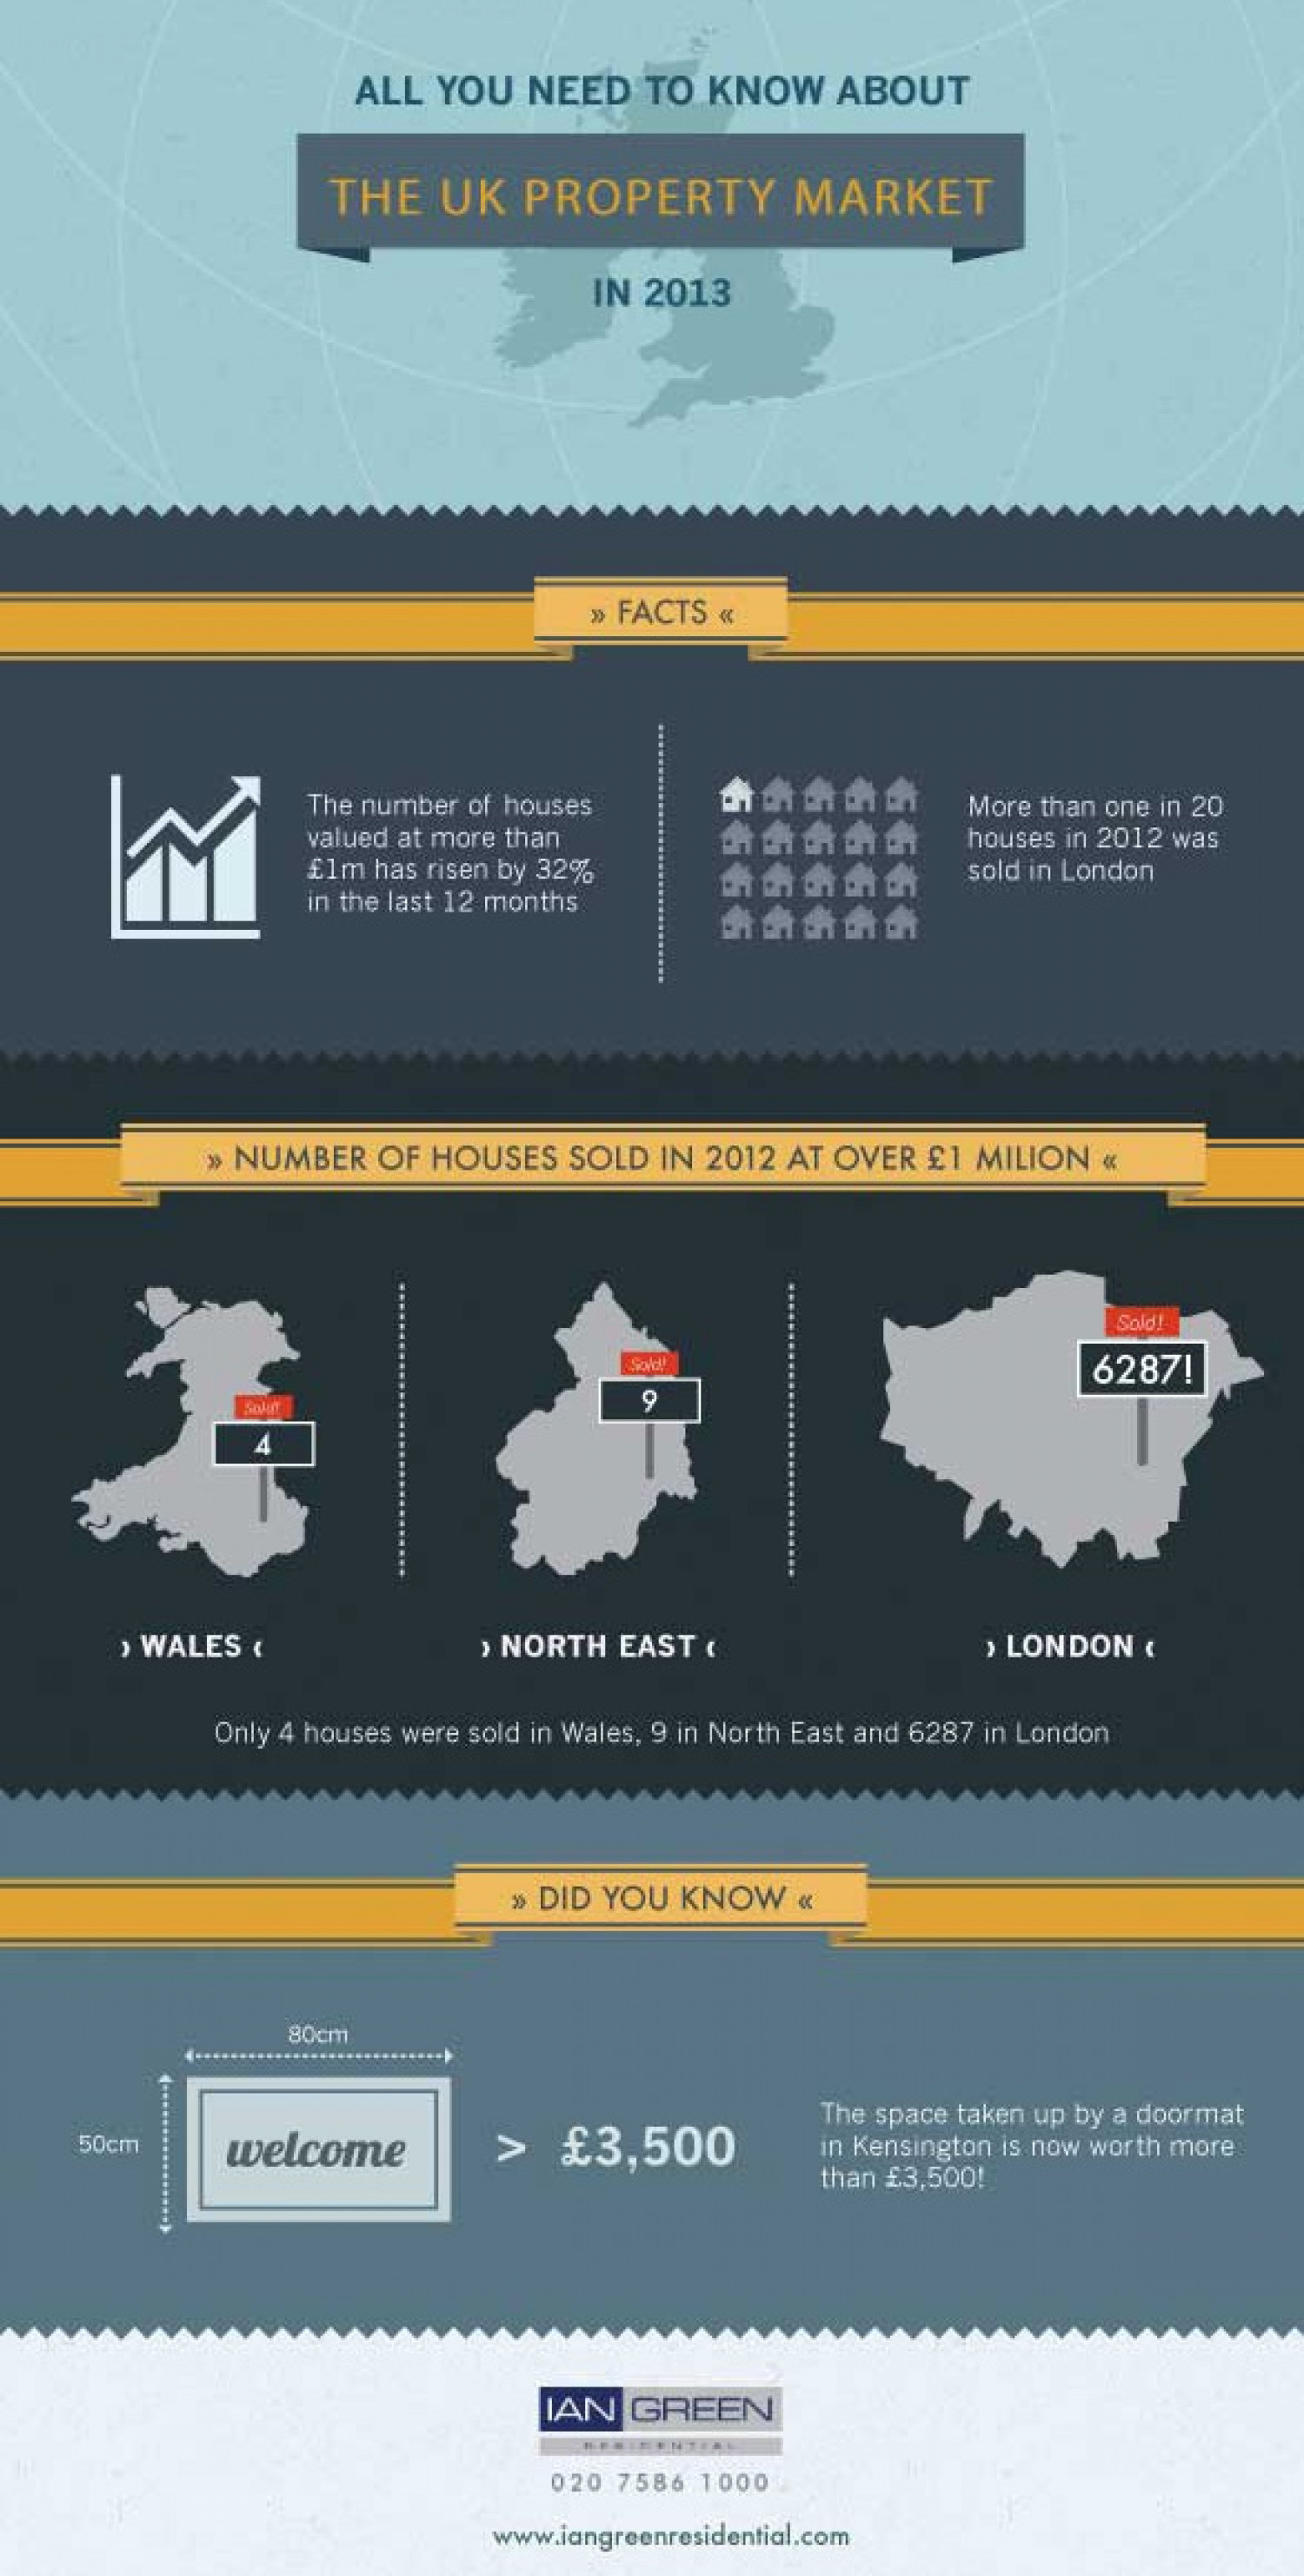 All You Need To Know About The Property Market In 2013 Infographic